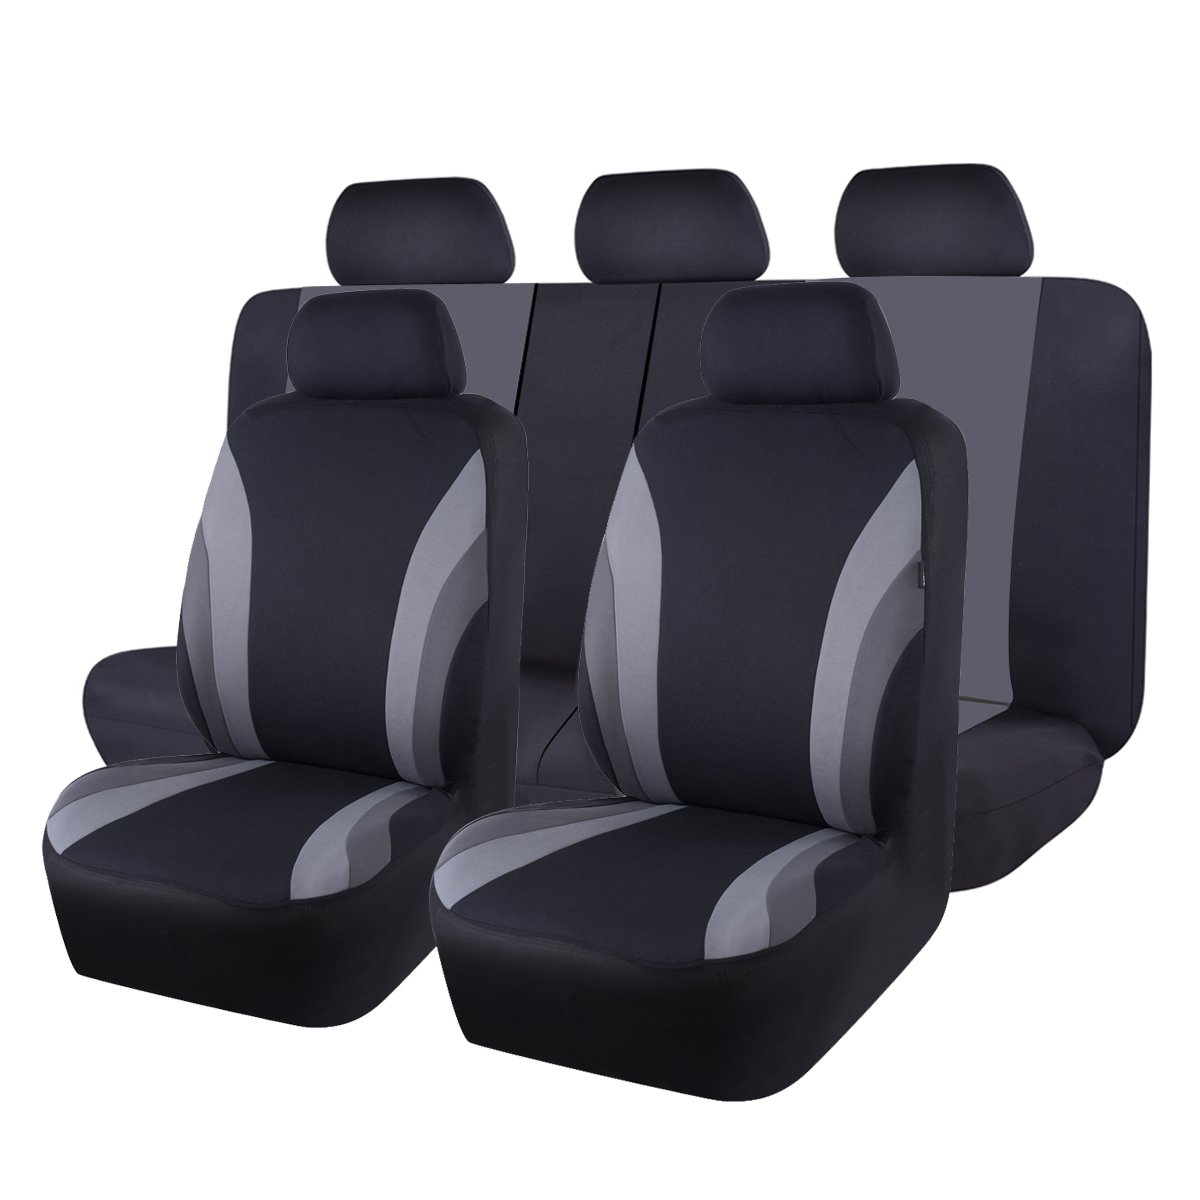 NEW ARRIVAL- CAR PASS Line Rider 11PCS Universal Fit Car Seat Cover -100% Breathable With 5mm Composite Sponge Inside,Airbag Compatible(Black and Gray) by CAR PASS